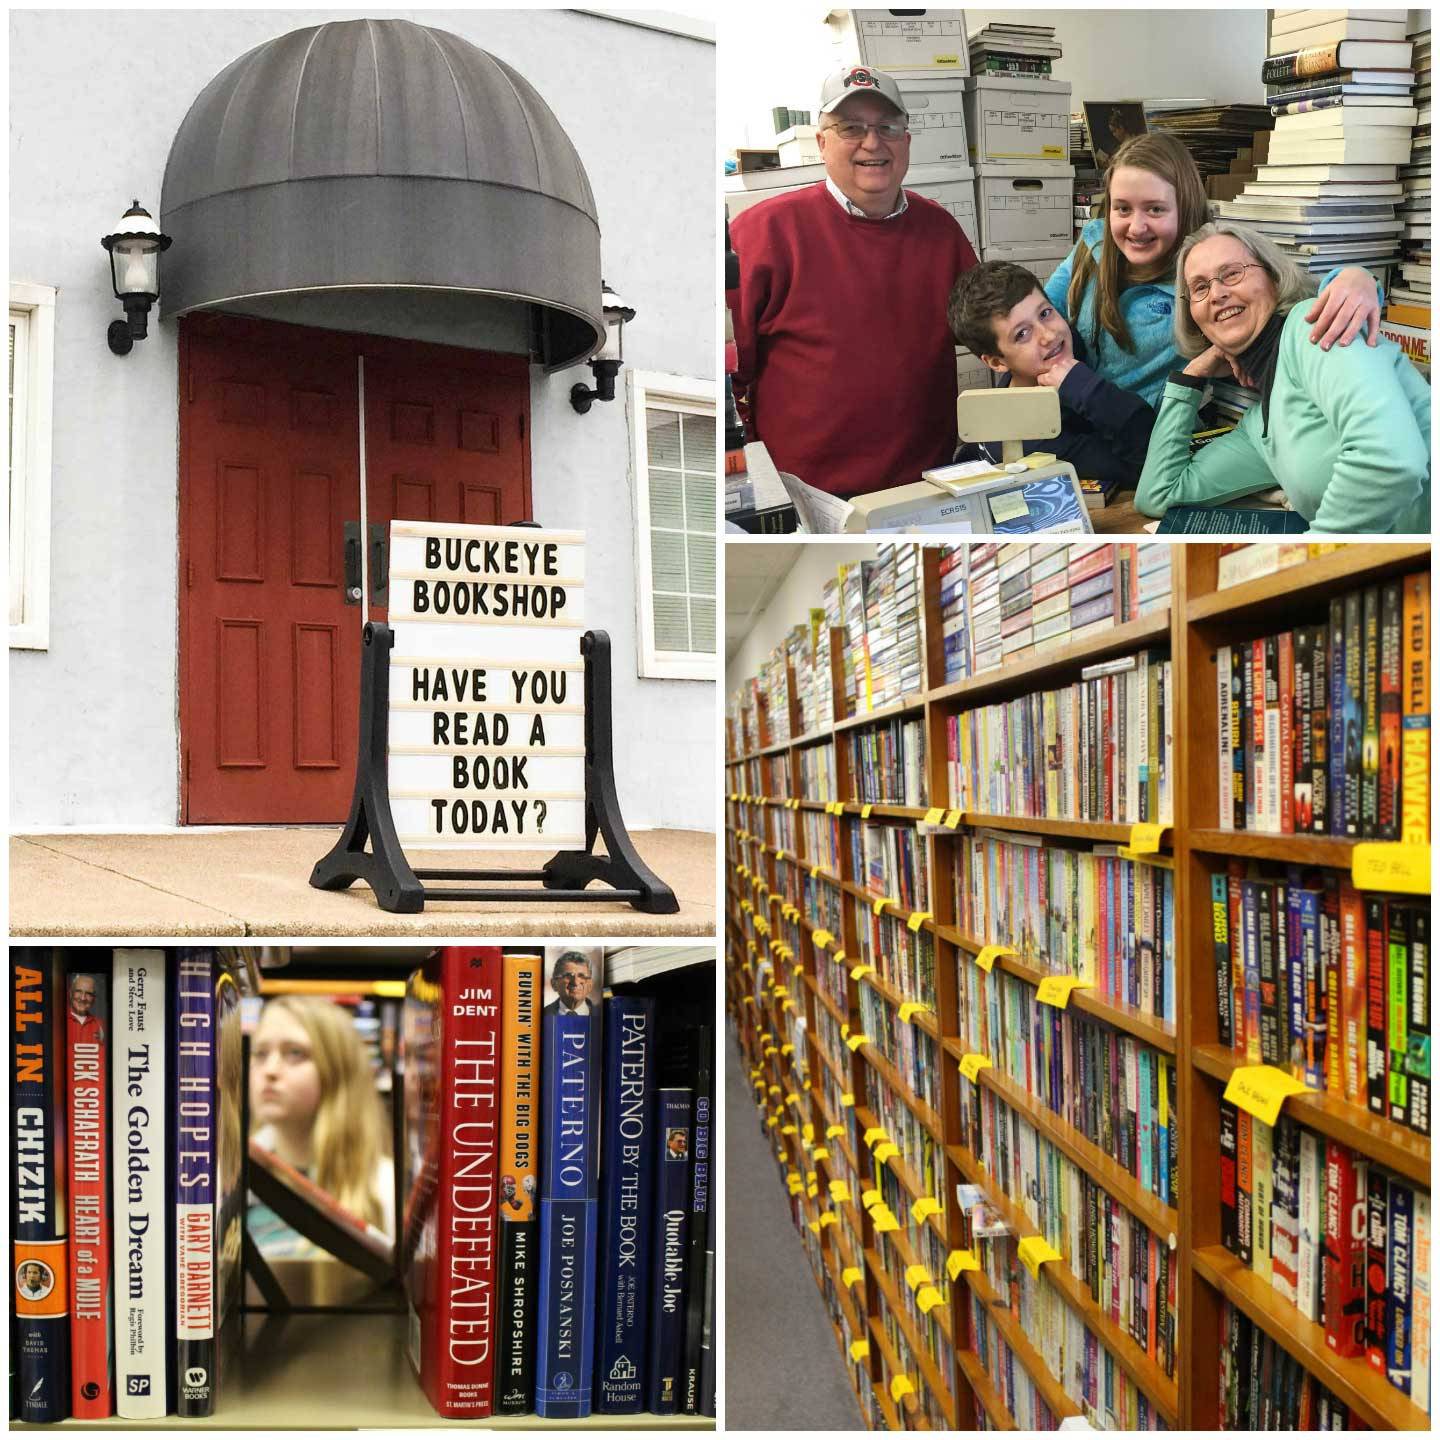 My parents' bookstore, Buckeye Bookshop, is such an important part of my family, and books are an integral part of all of our lives.